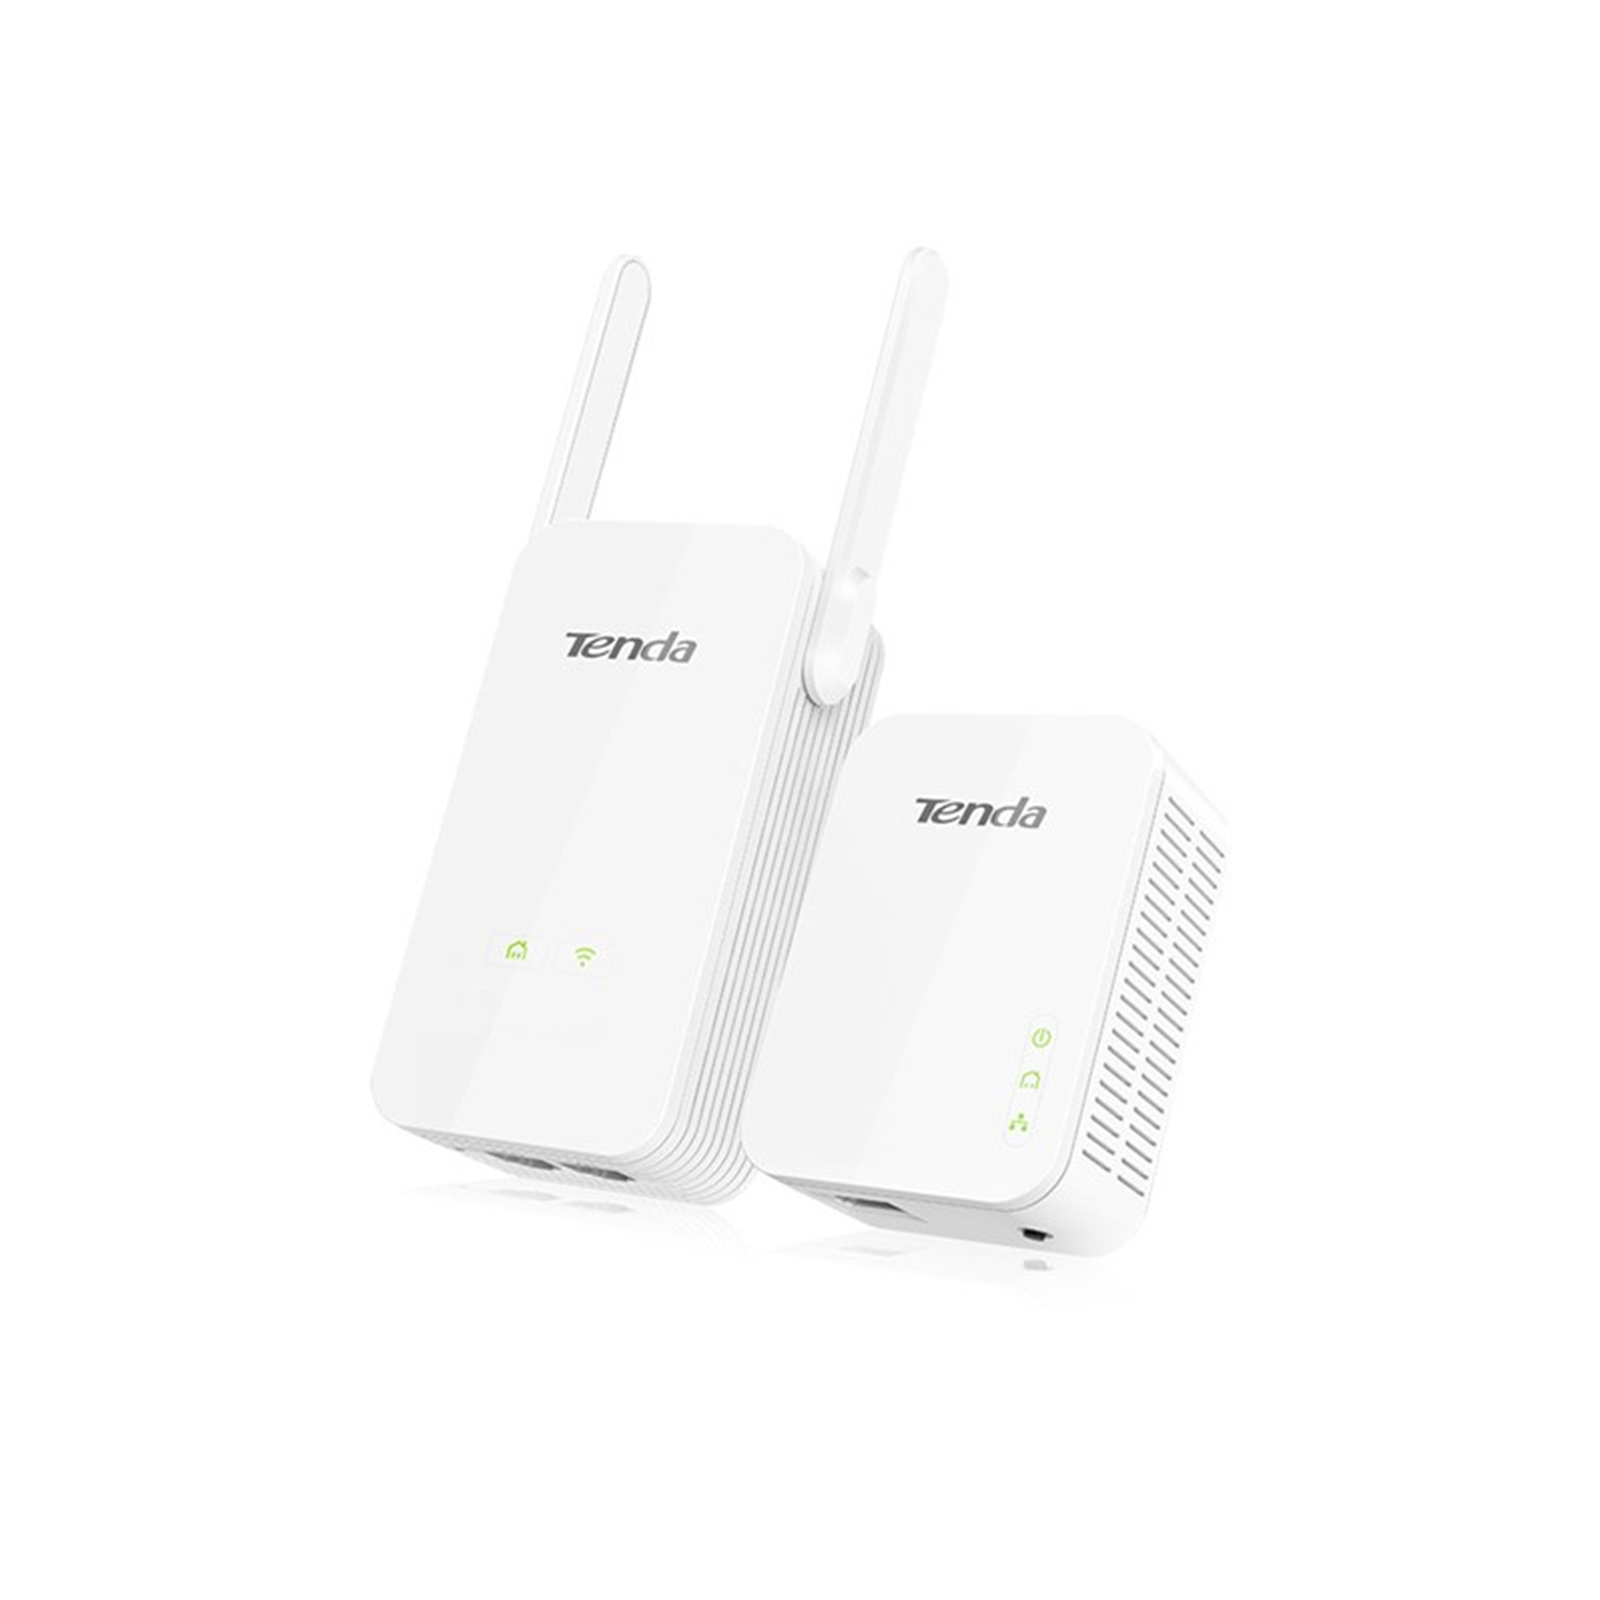 Tenda Ph5 Av1000 Wifi Powerline Extender Kit Serversplus